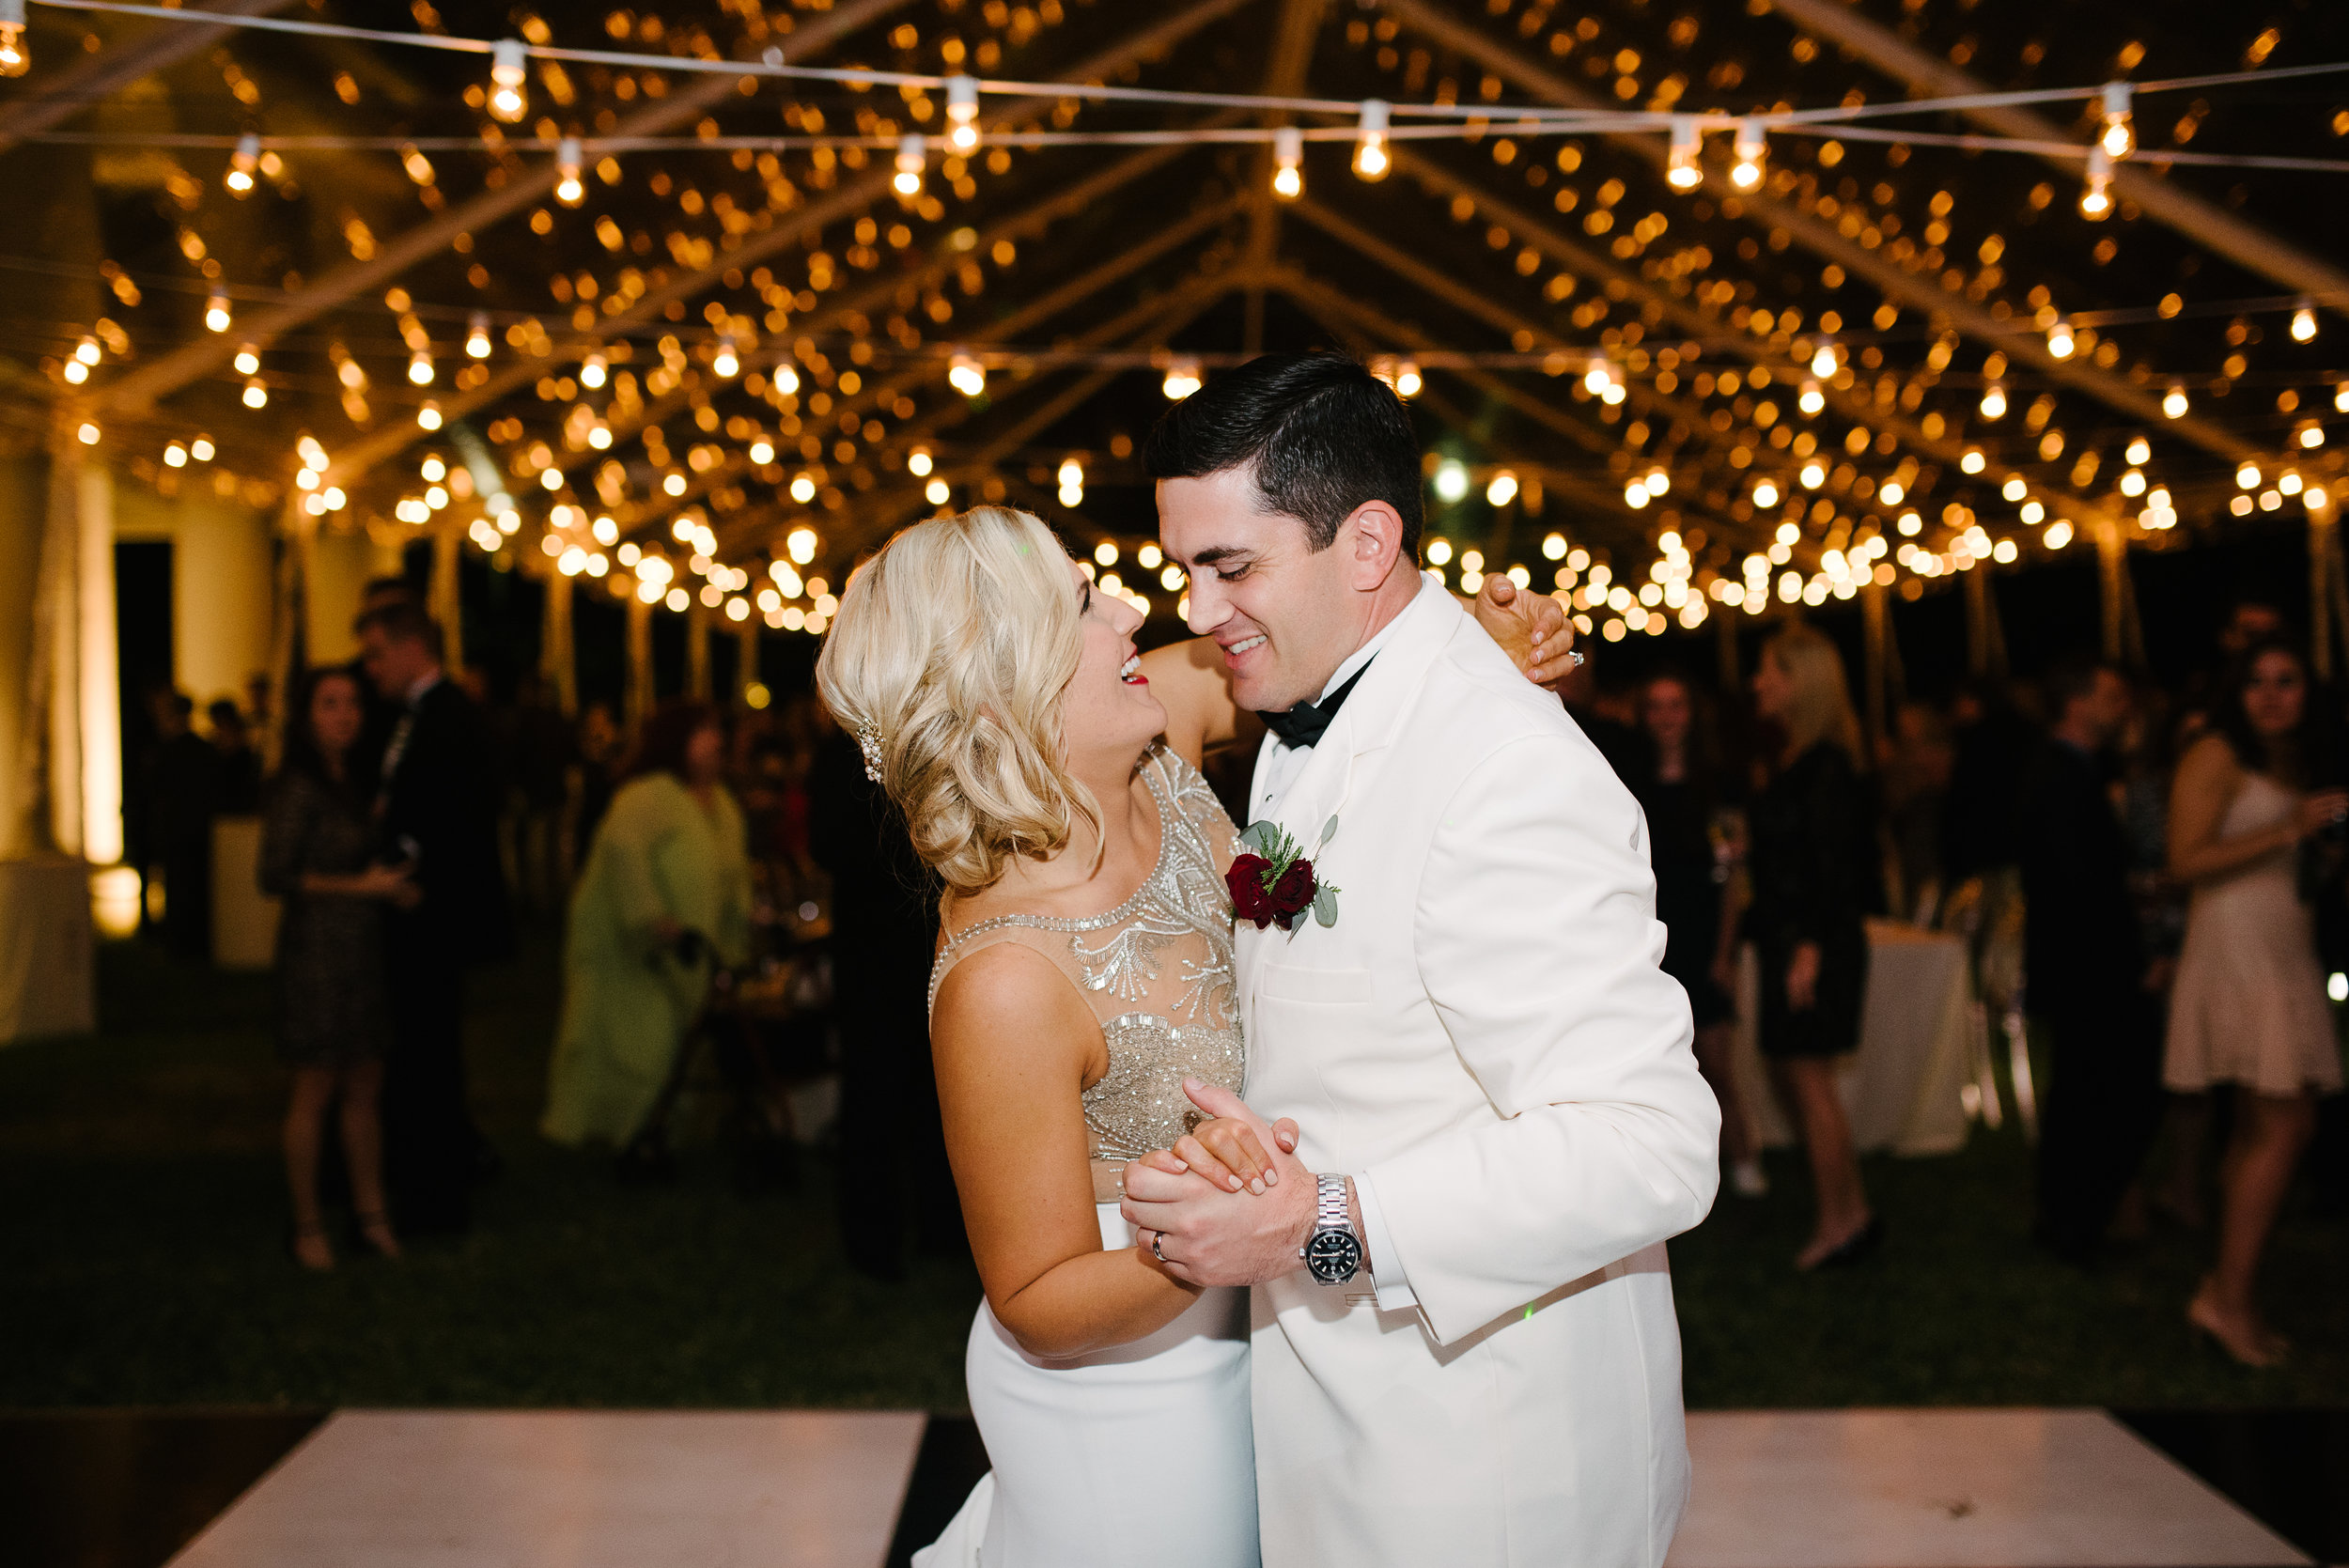 Southern Fete, Southern Wedding, Bride and Groom Dance, Hannah Mulligan Photography, Paul and Lulu Hilliard Art Museum